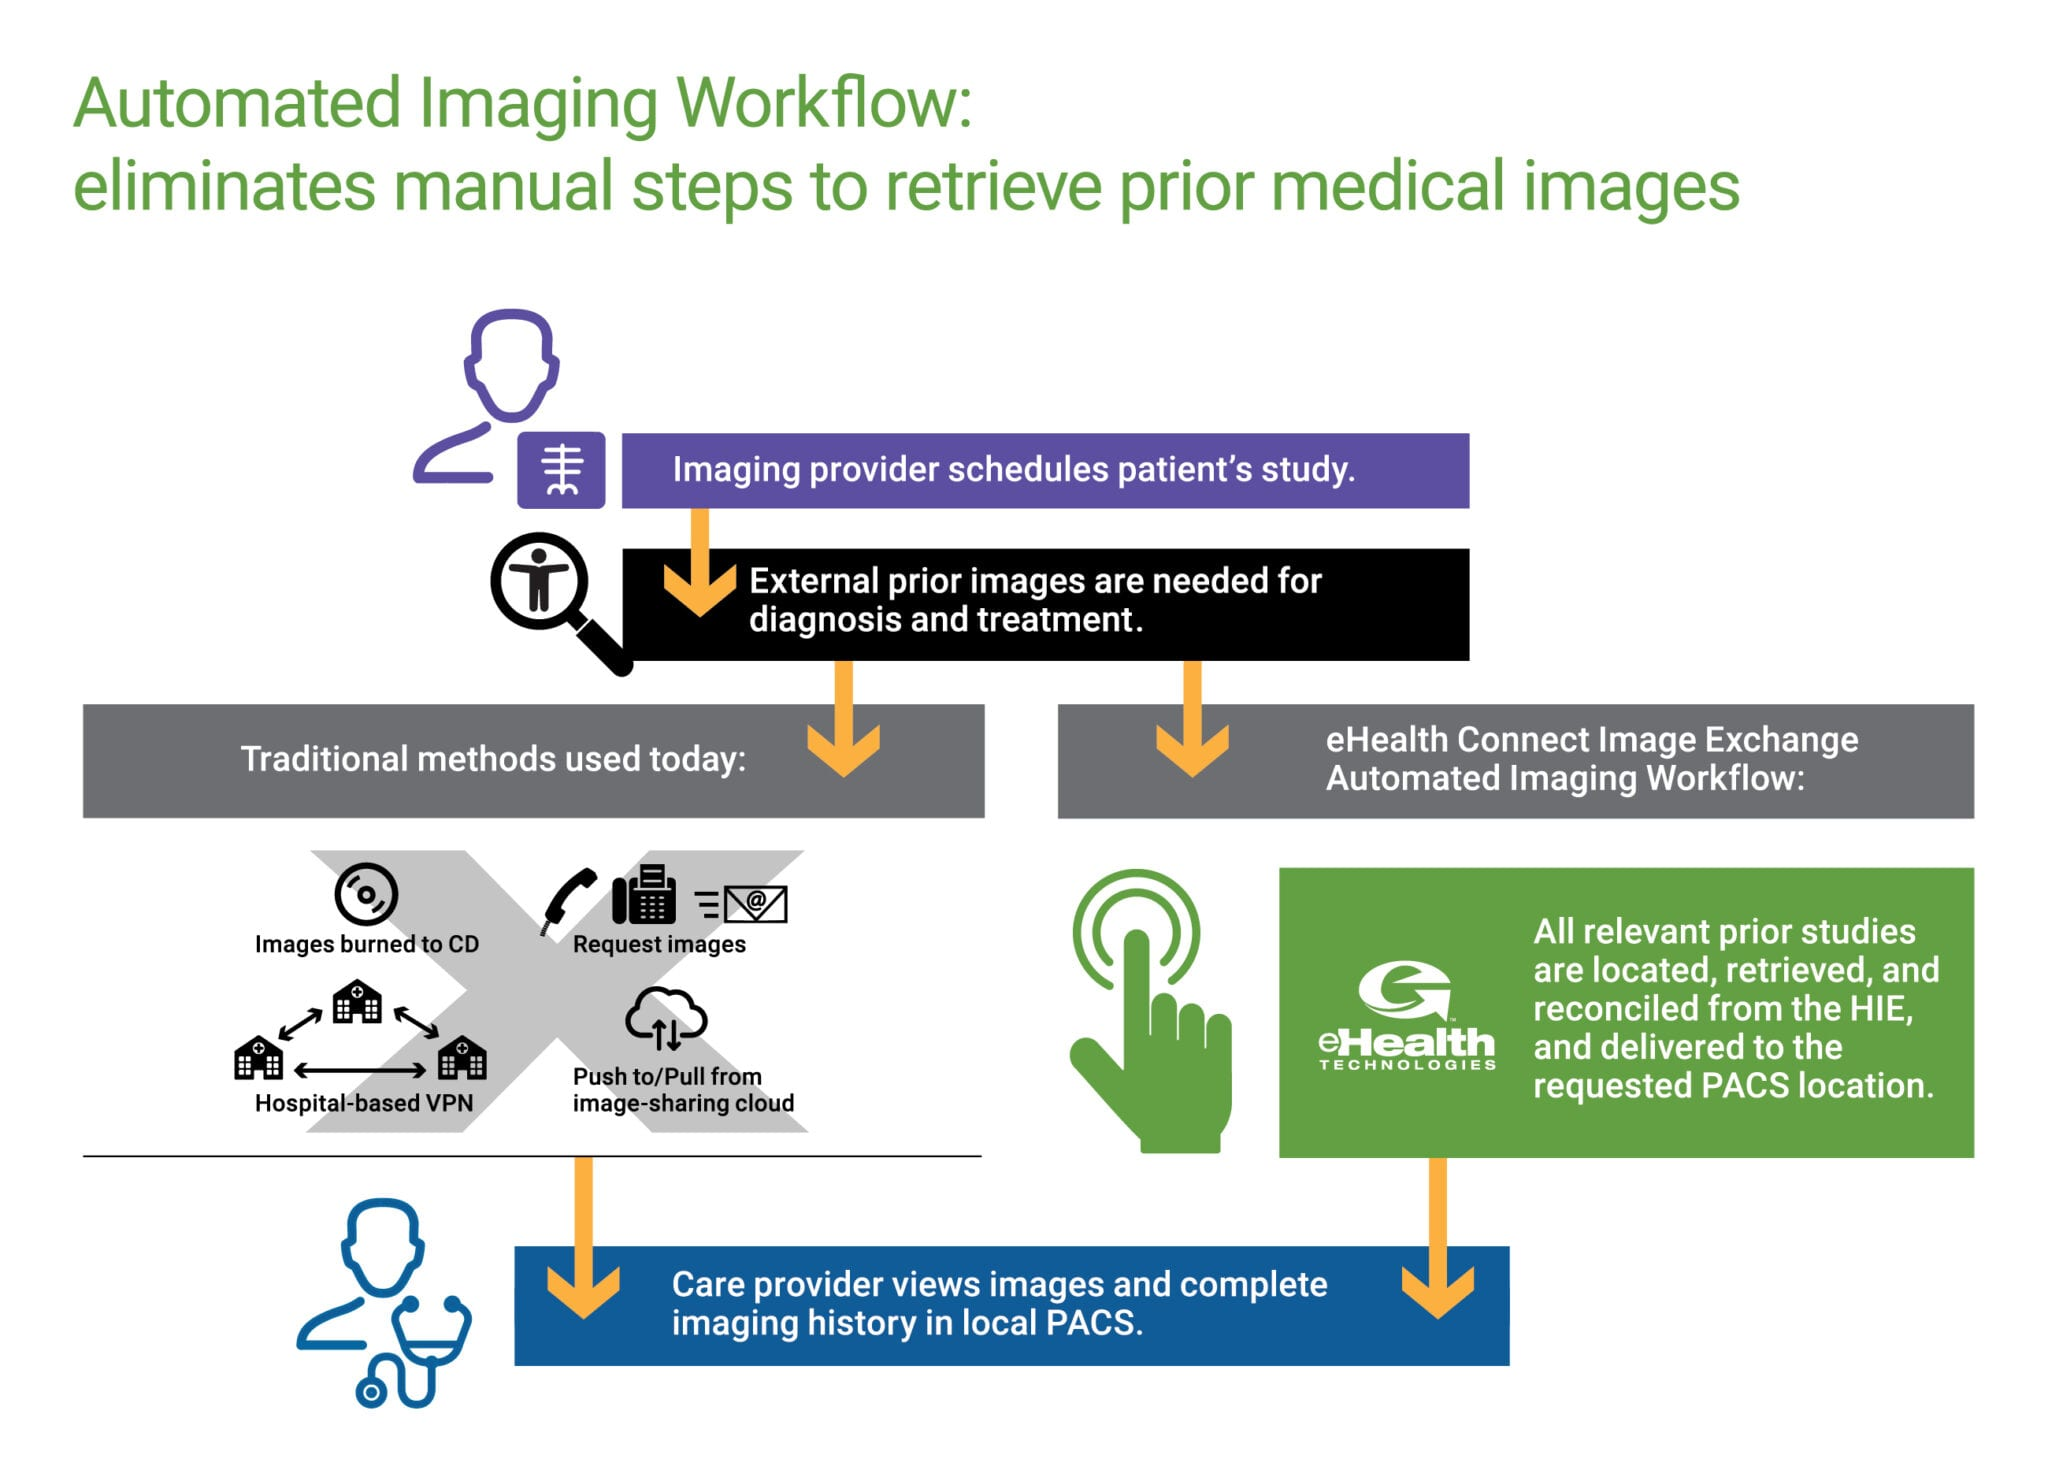 Automated Imaging Workflow Info-Graphic